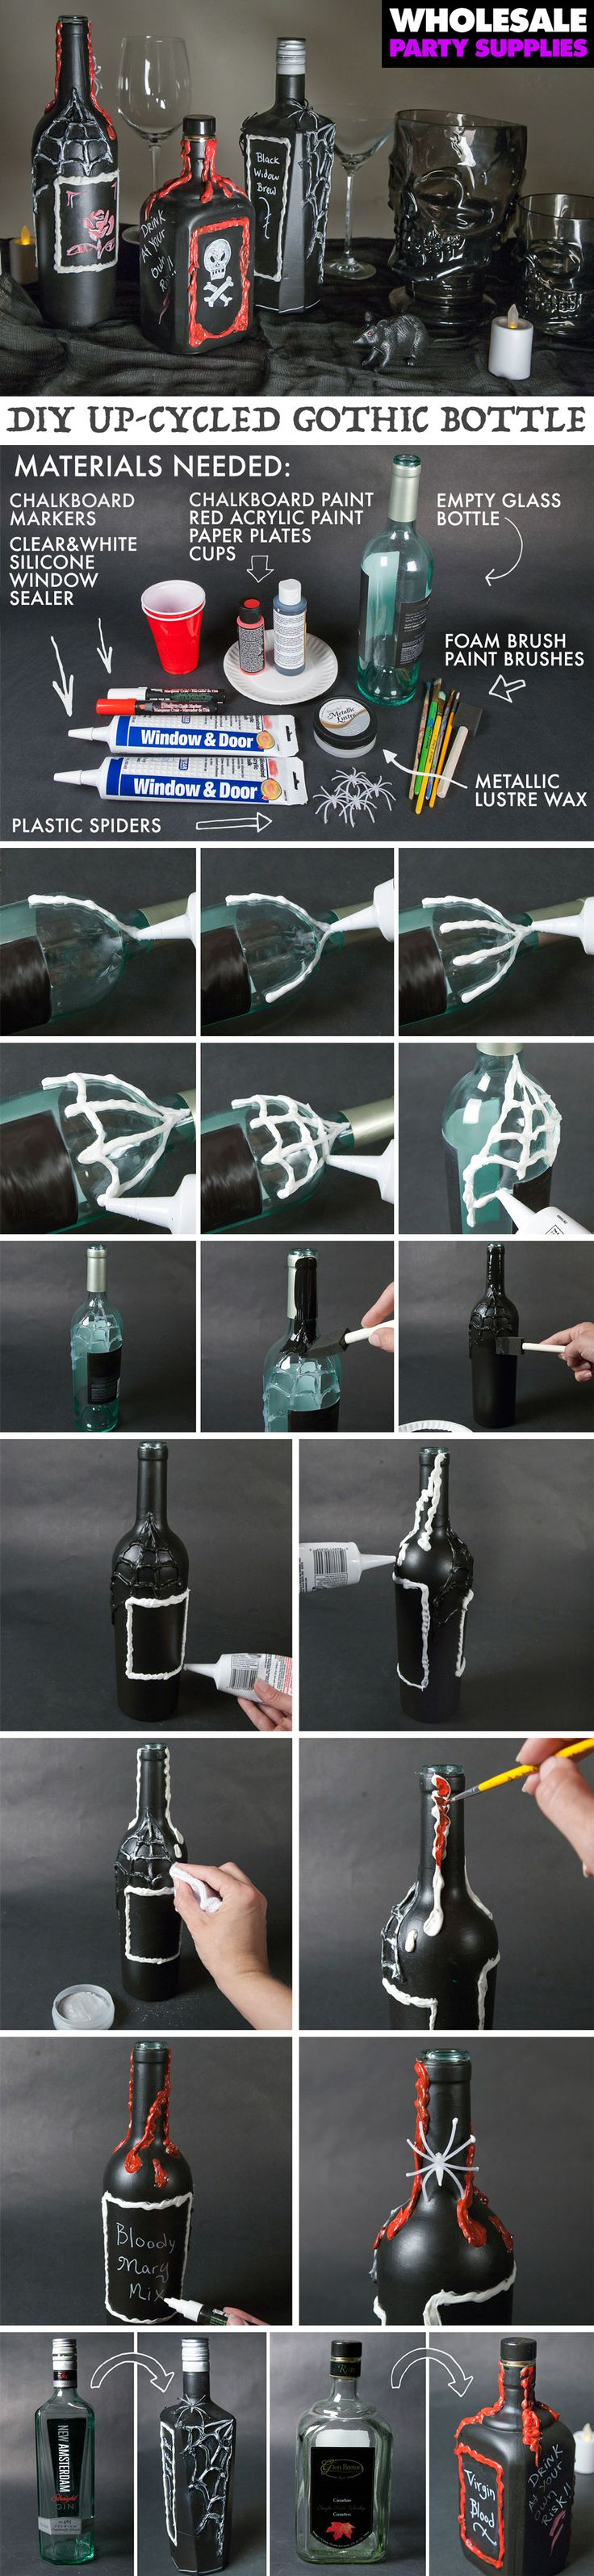 Turn your old bottles into Gothic decorations for Halloween with our step-by-step tutorial.